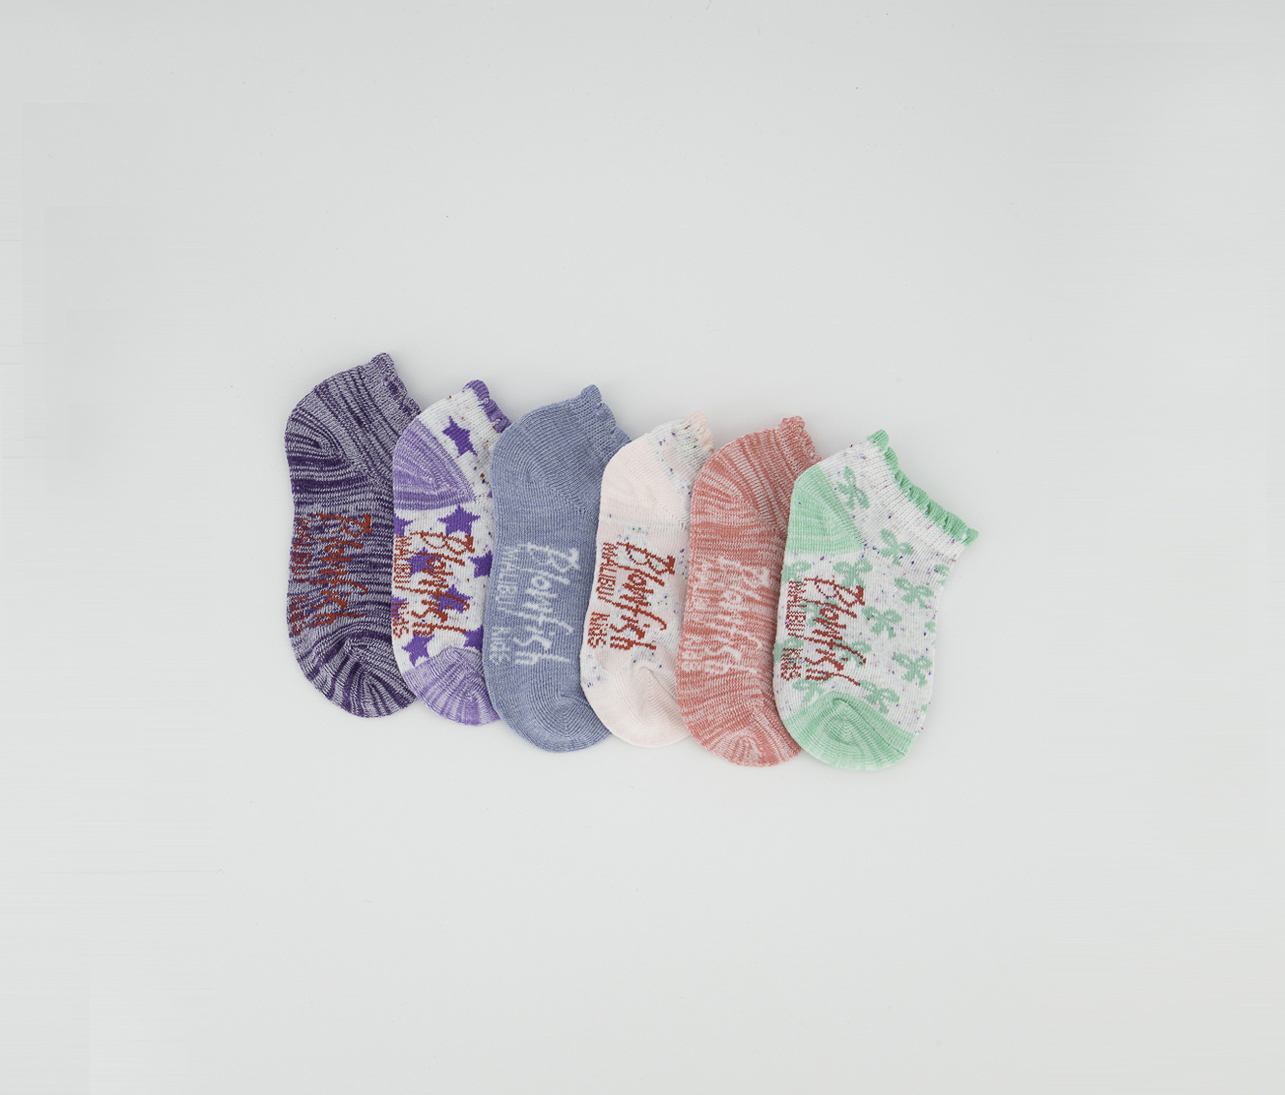 6 Pairs Toddler Girls Low Cuts Socks, Green/Chambray/Purple/Pink